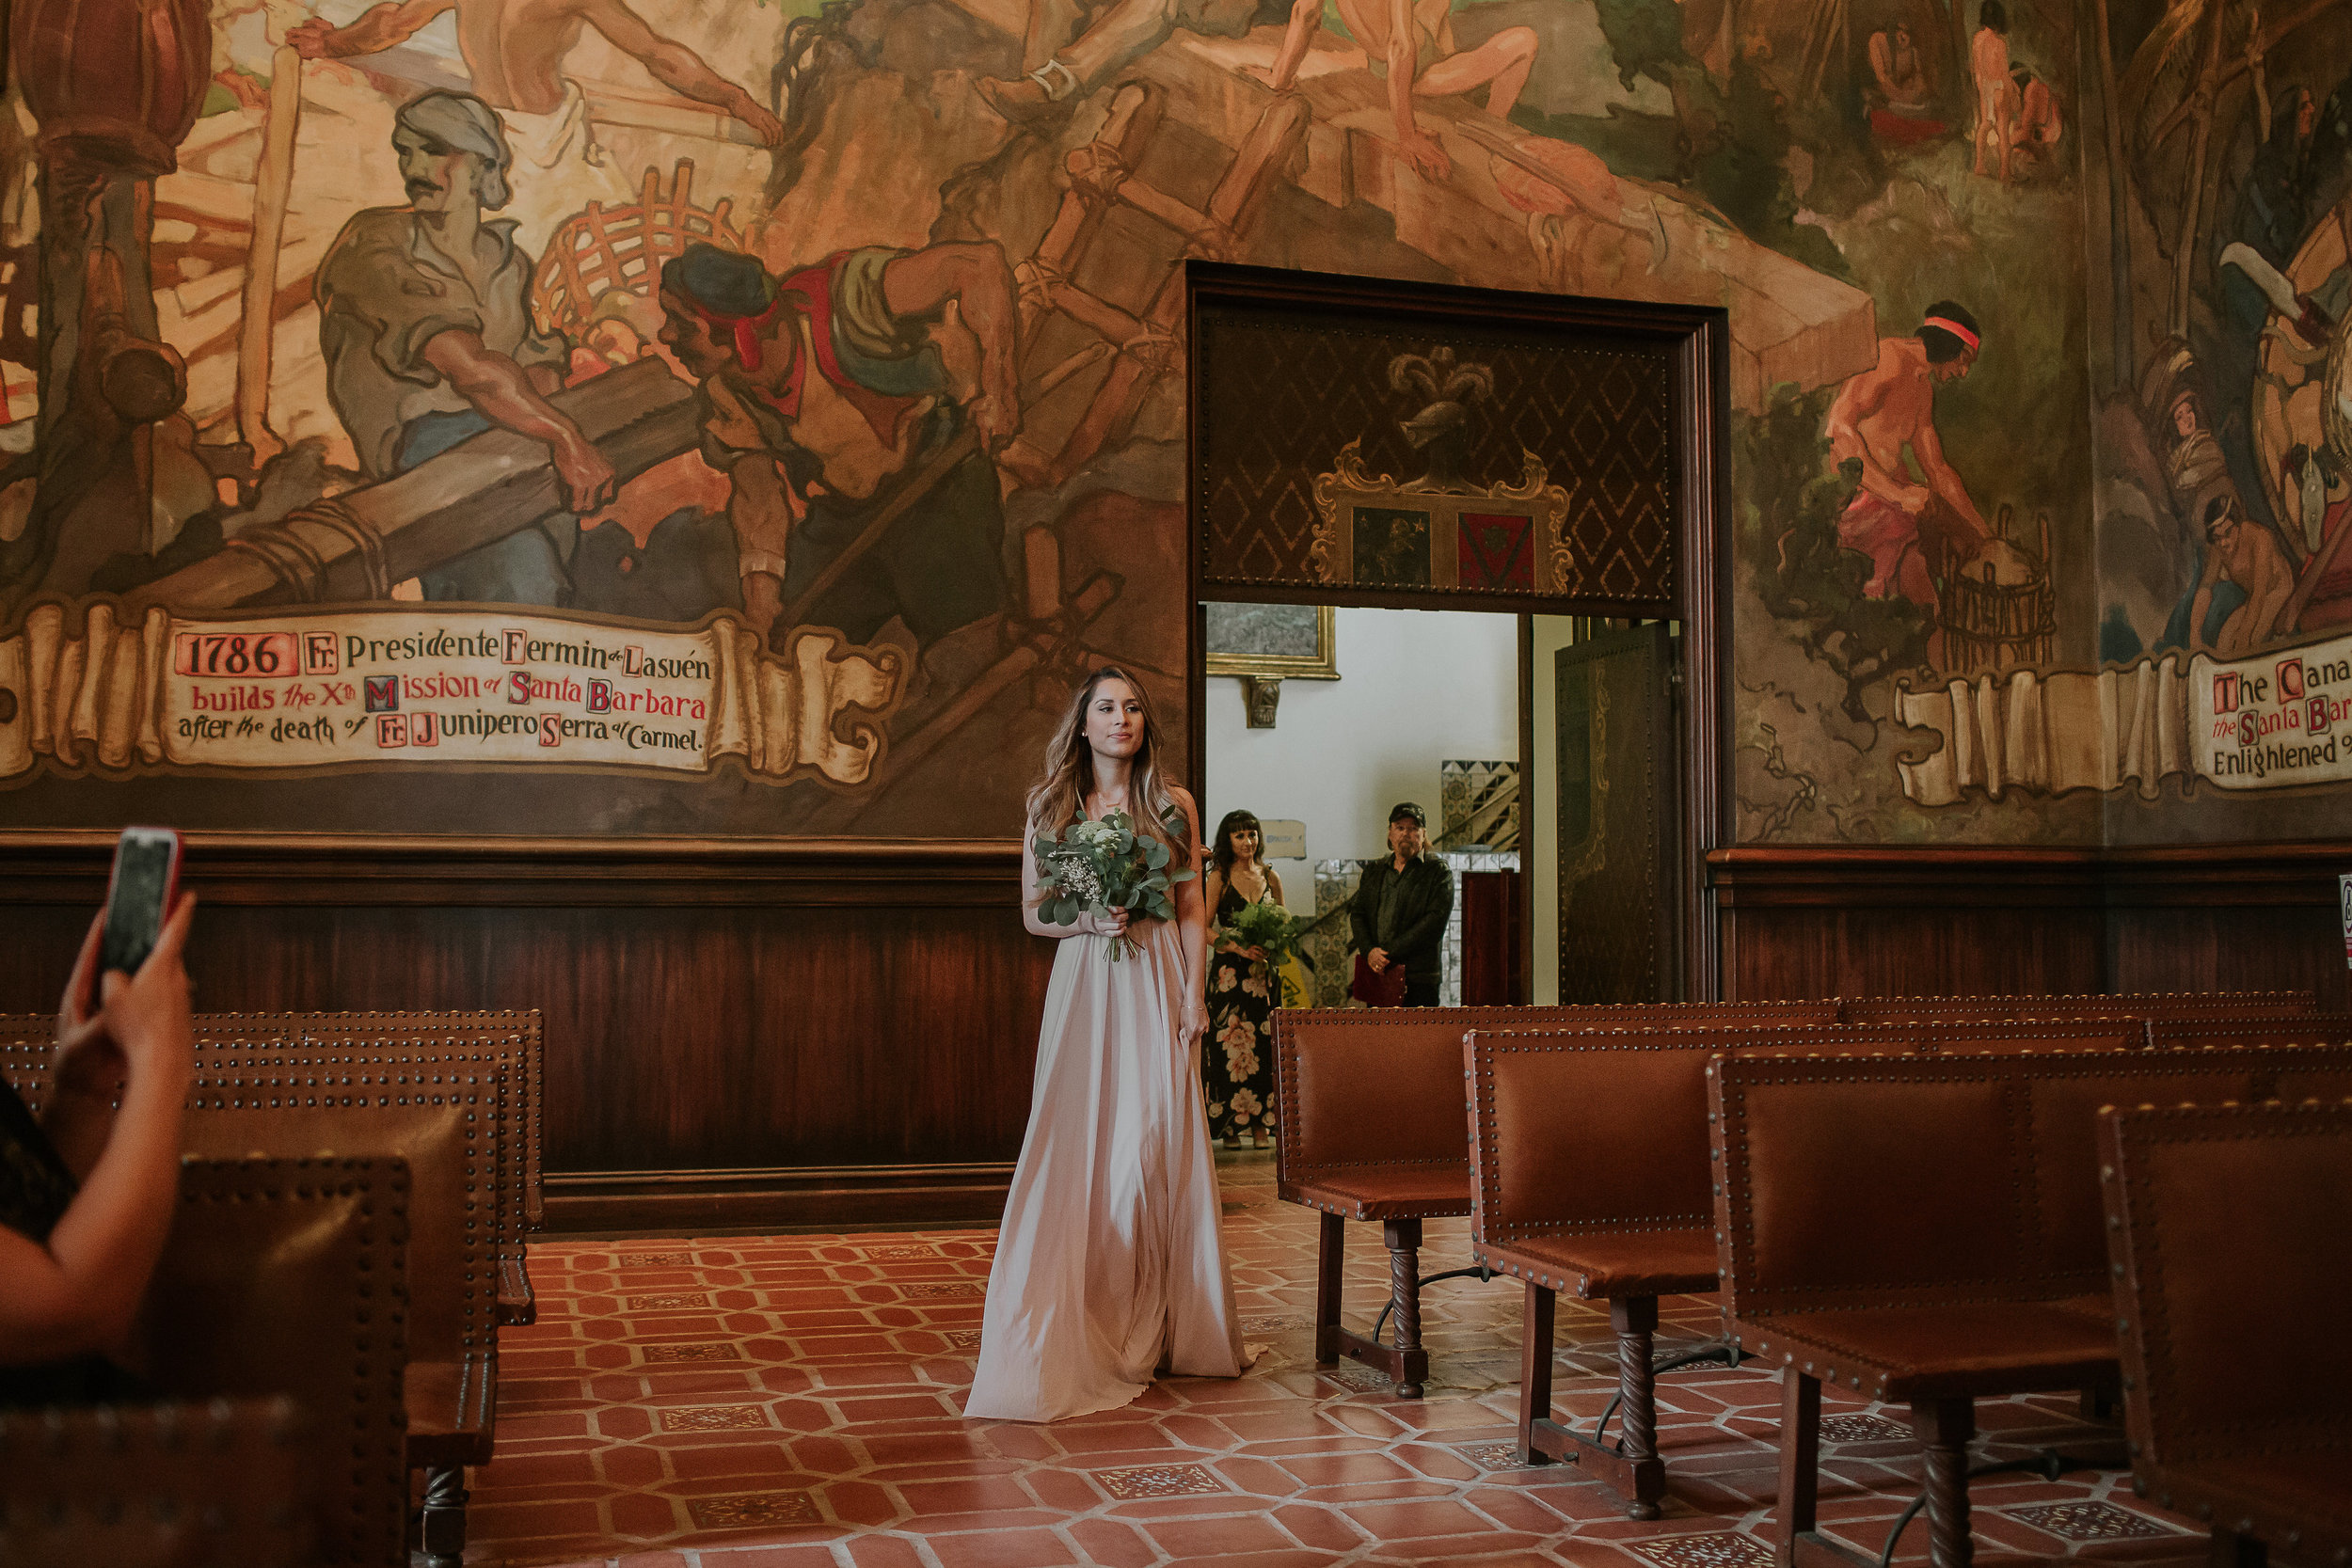 GabrielaandDeJuansantabarbaracourthouseweddingstellamaresweddingelopement-123.jpg